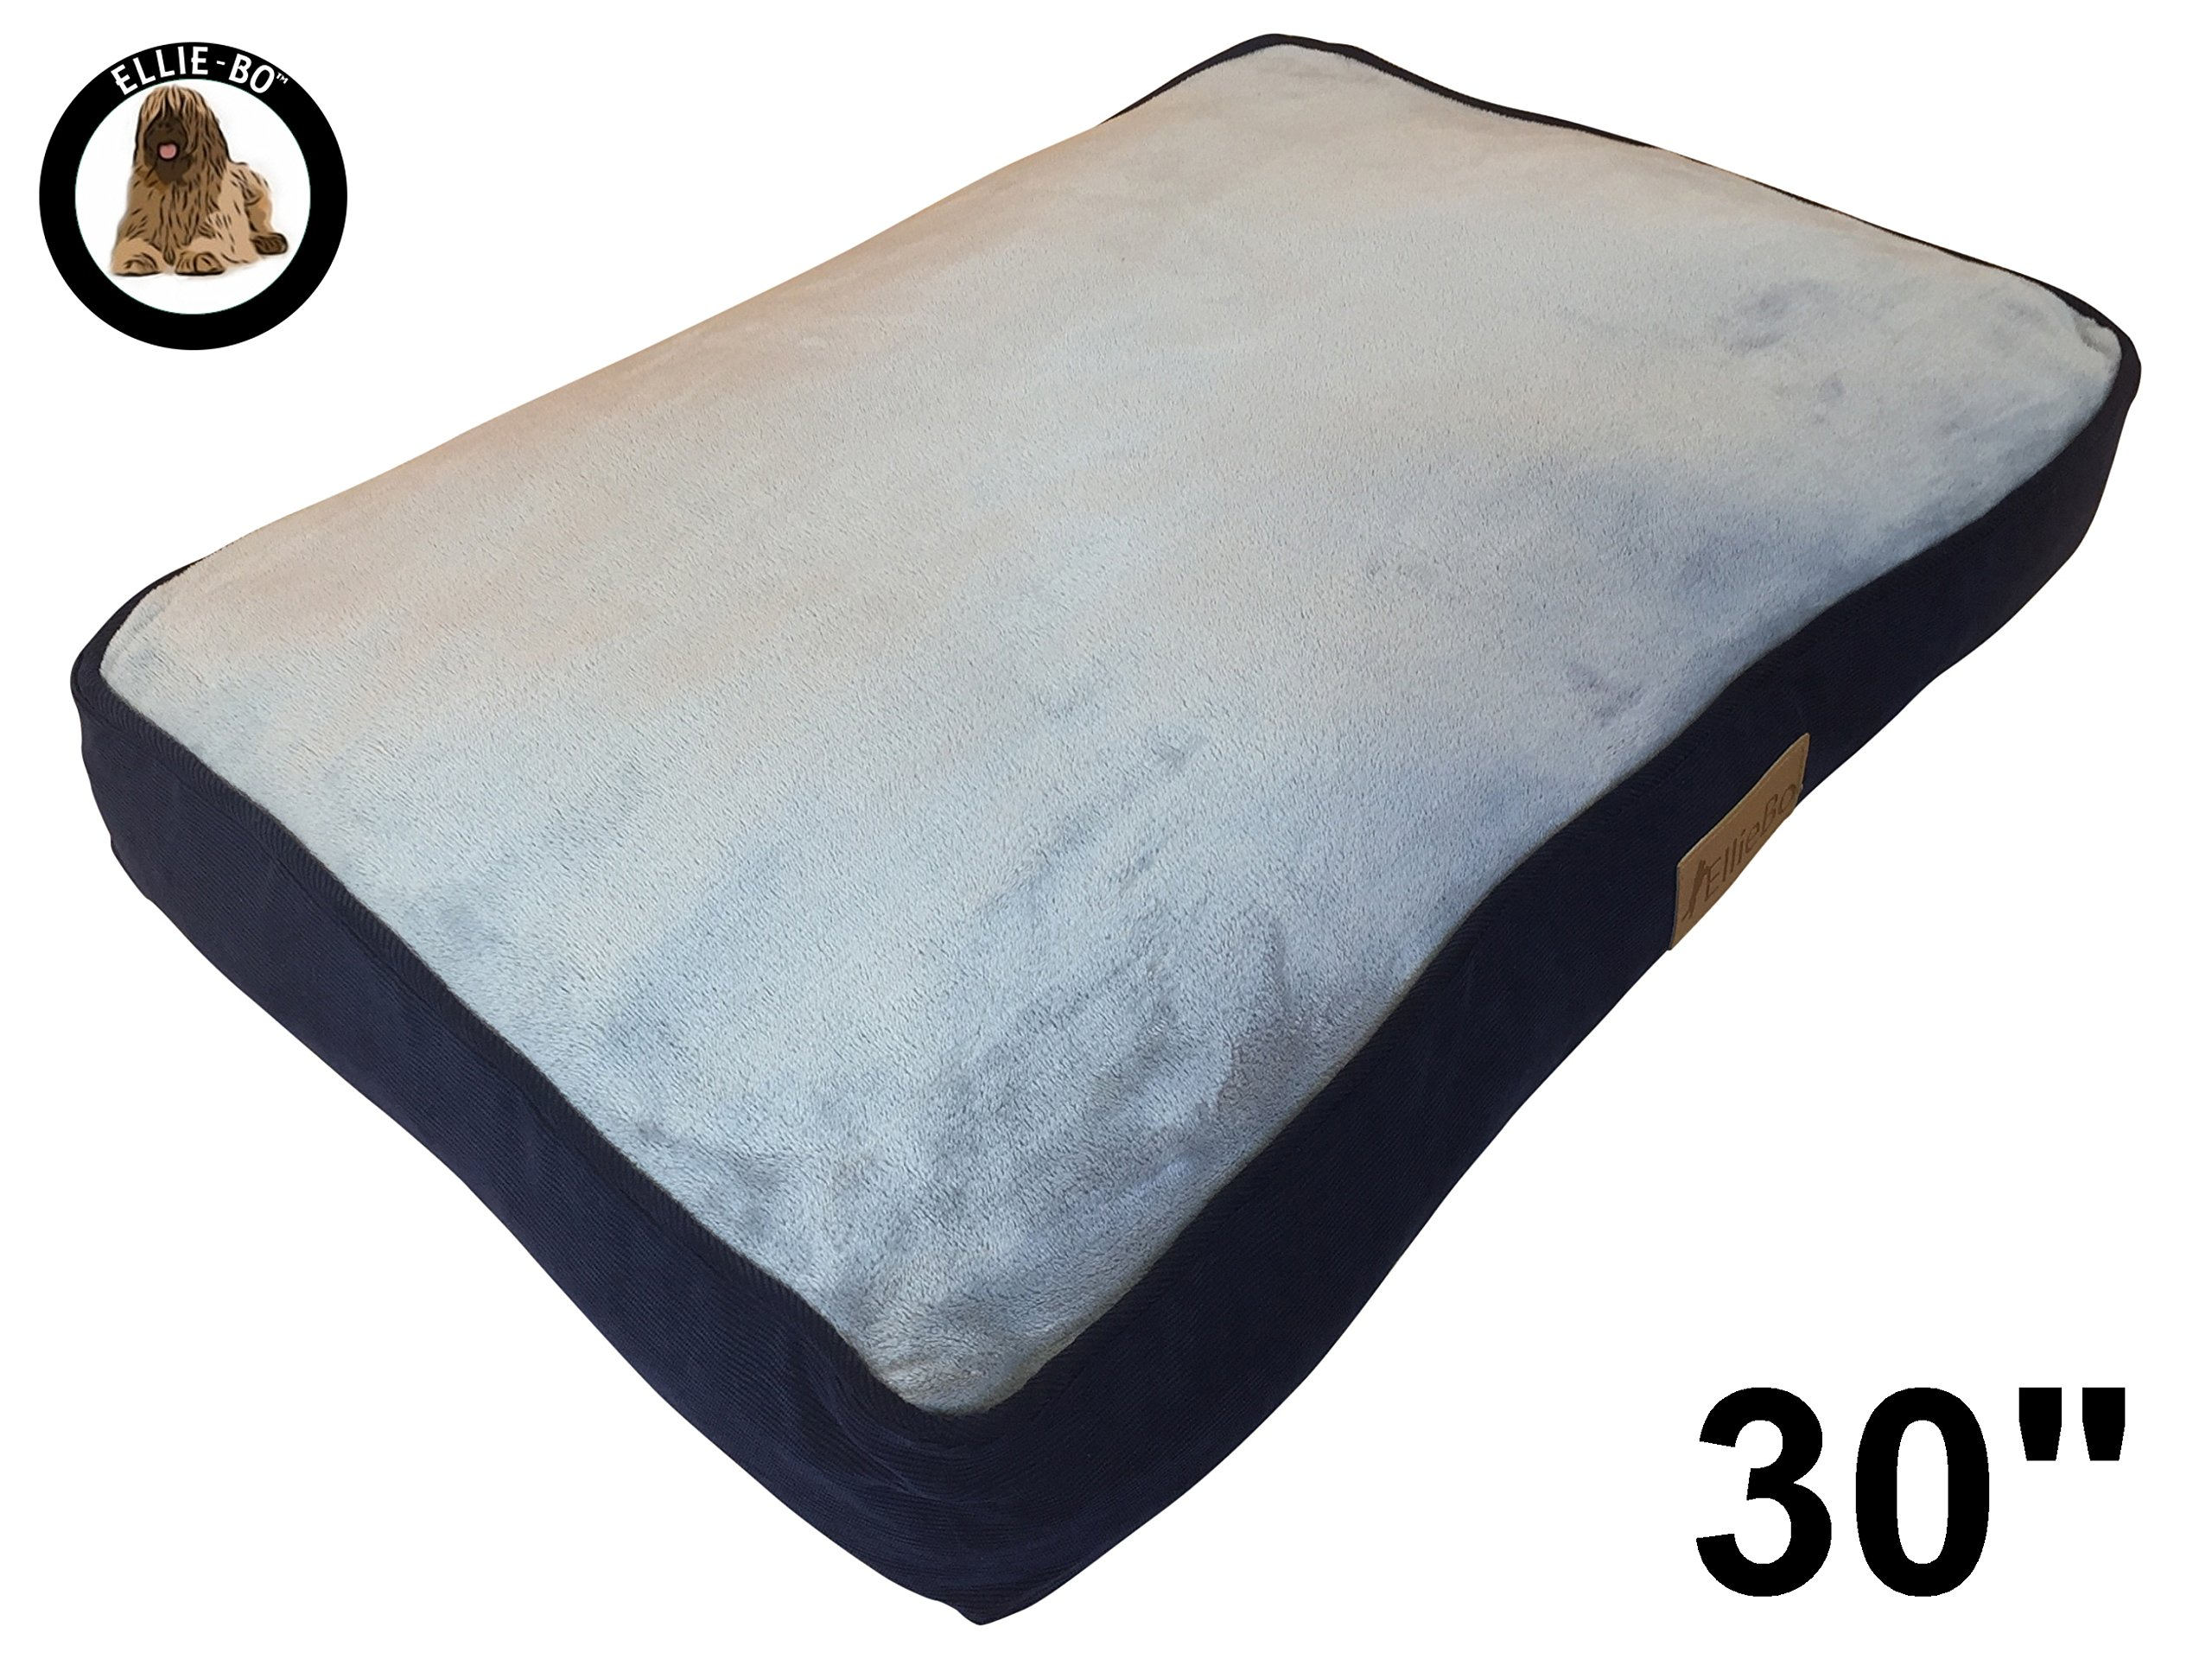 Ellie-Bo Medium 71cms x 48cms Dog Bed Blue Corduroy Sides and Grey Faux Fur Topping will fit 30″ Small Dog Cage or Crate